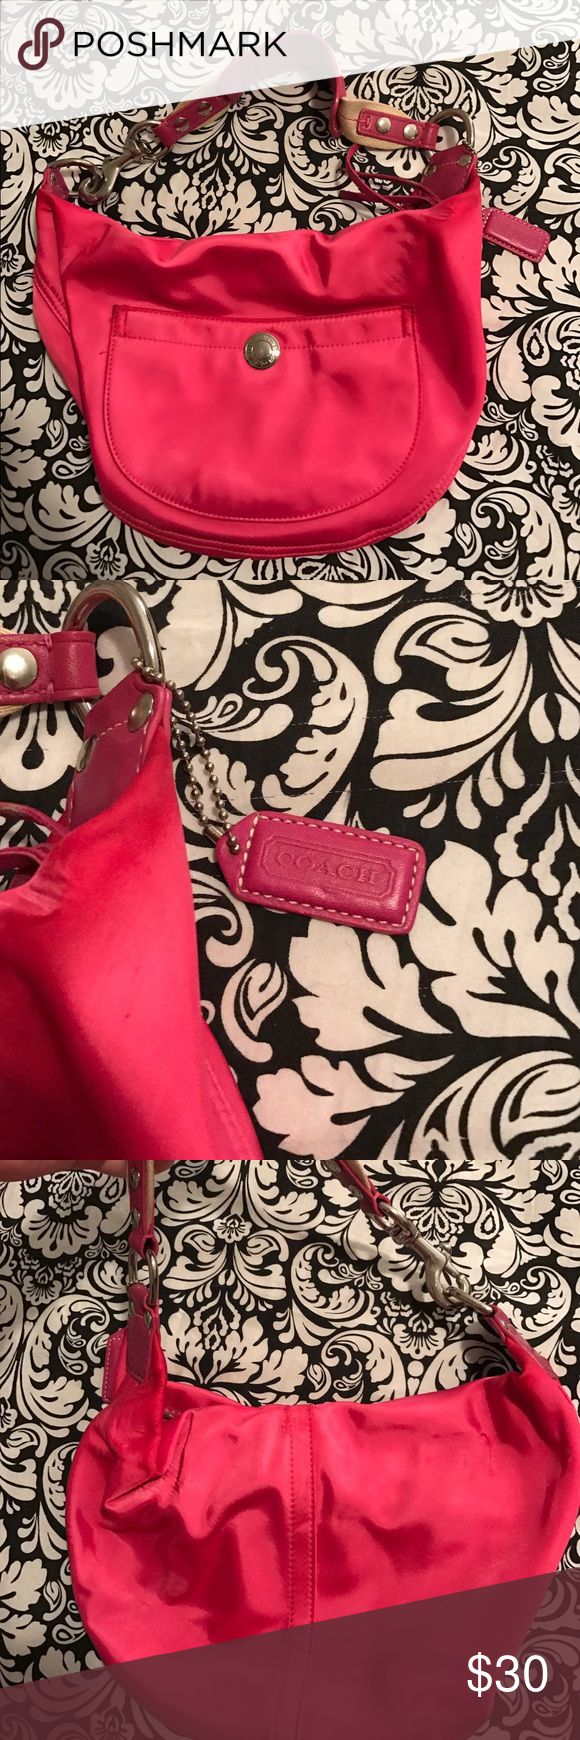 Hot pink Satin Coach purse Cute little purse, perfect for spring. In great shape. 👛 Coach Bags Shoulder Bags